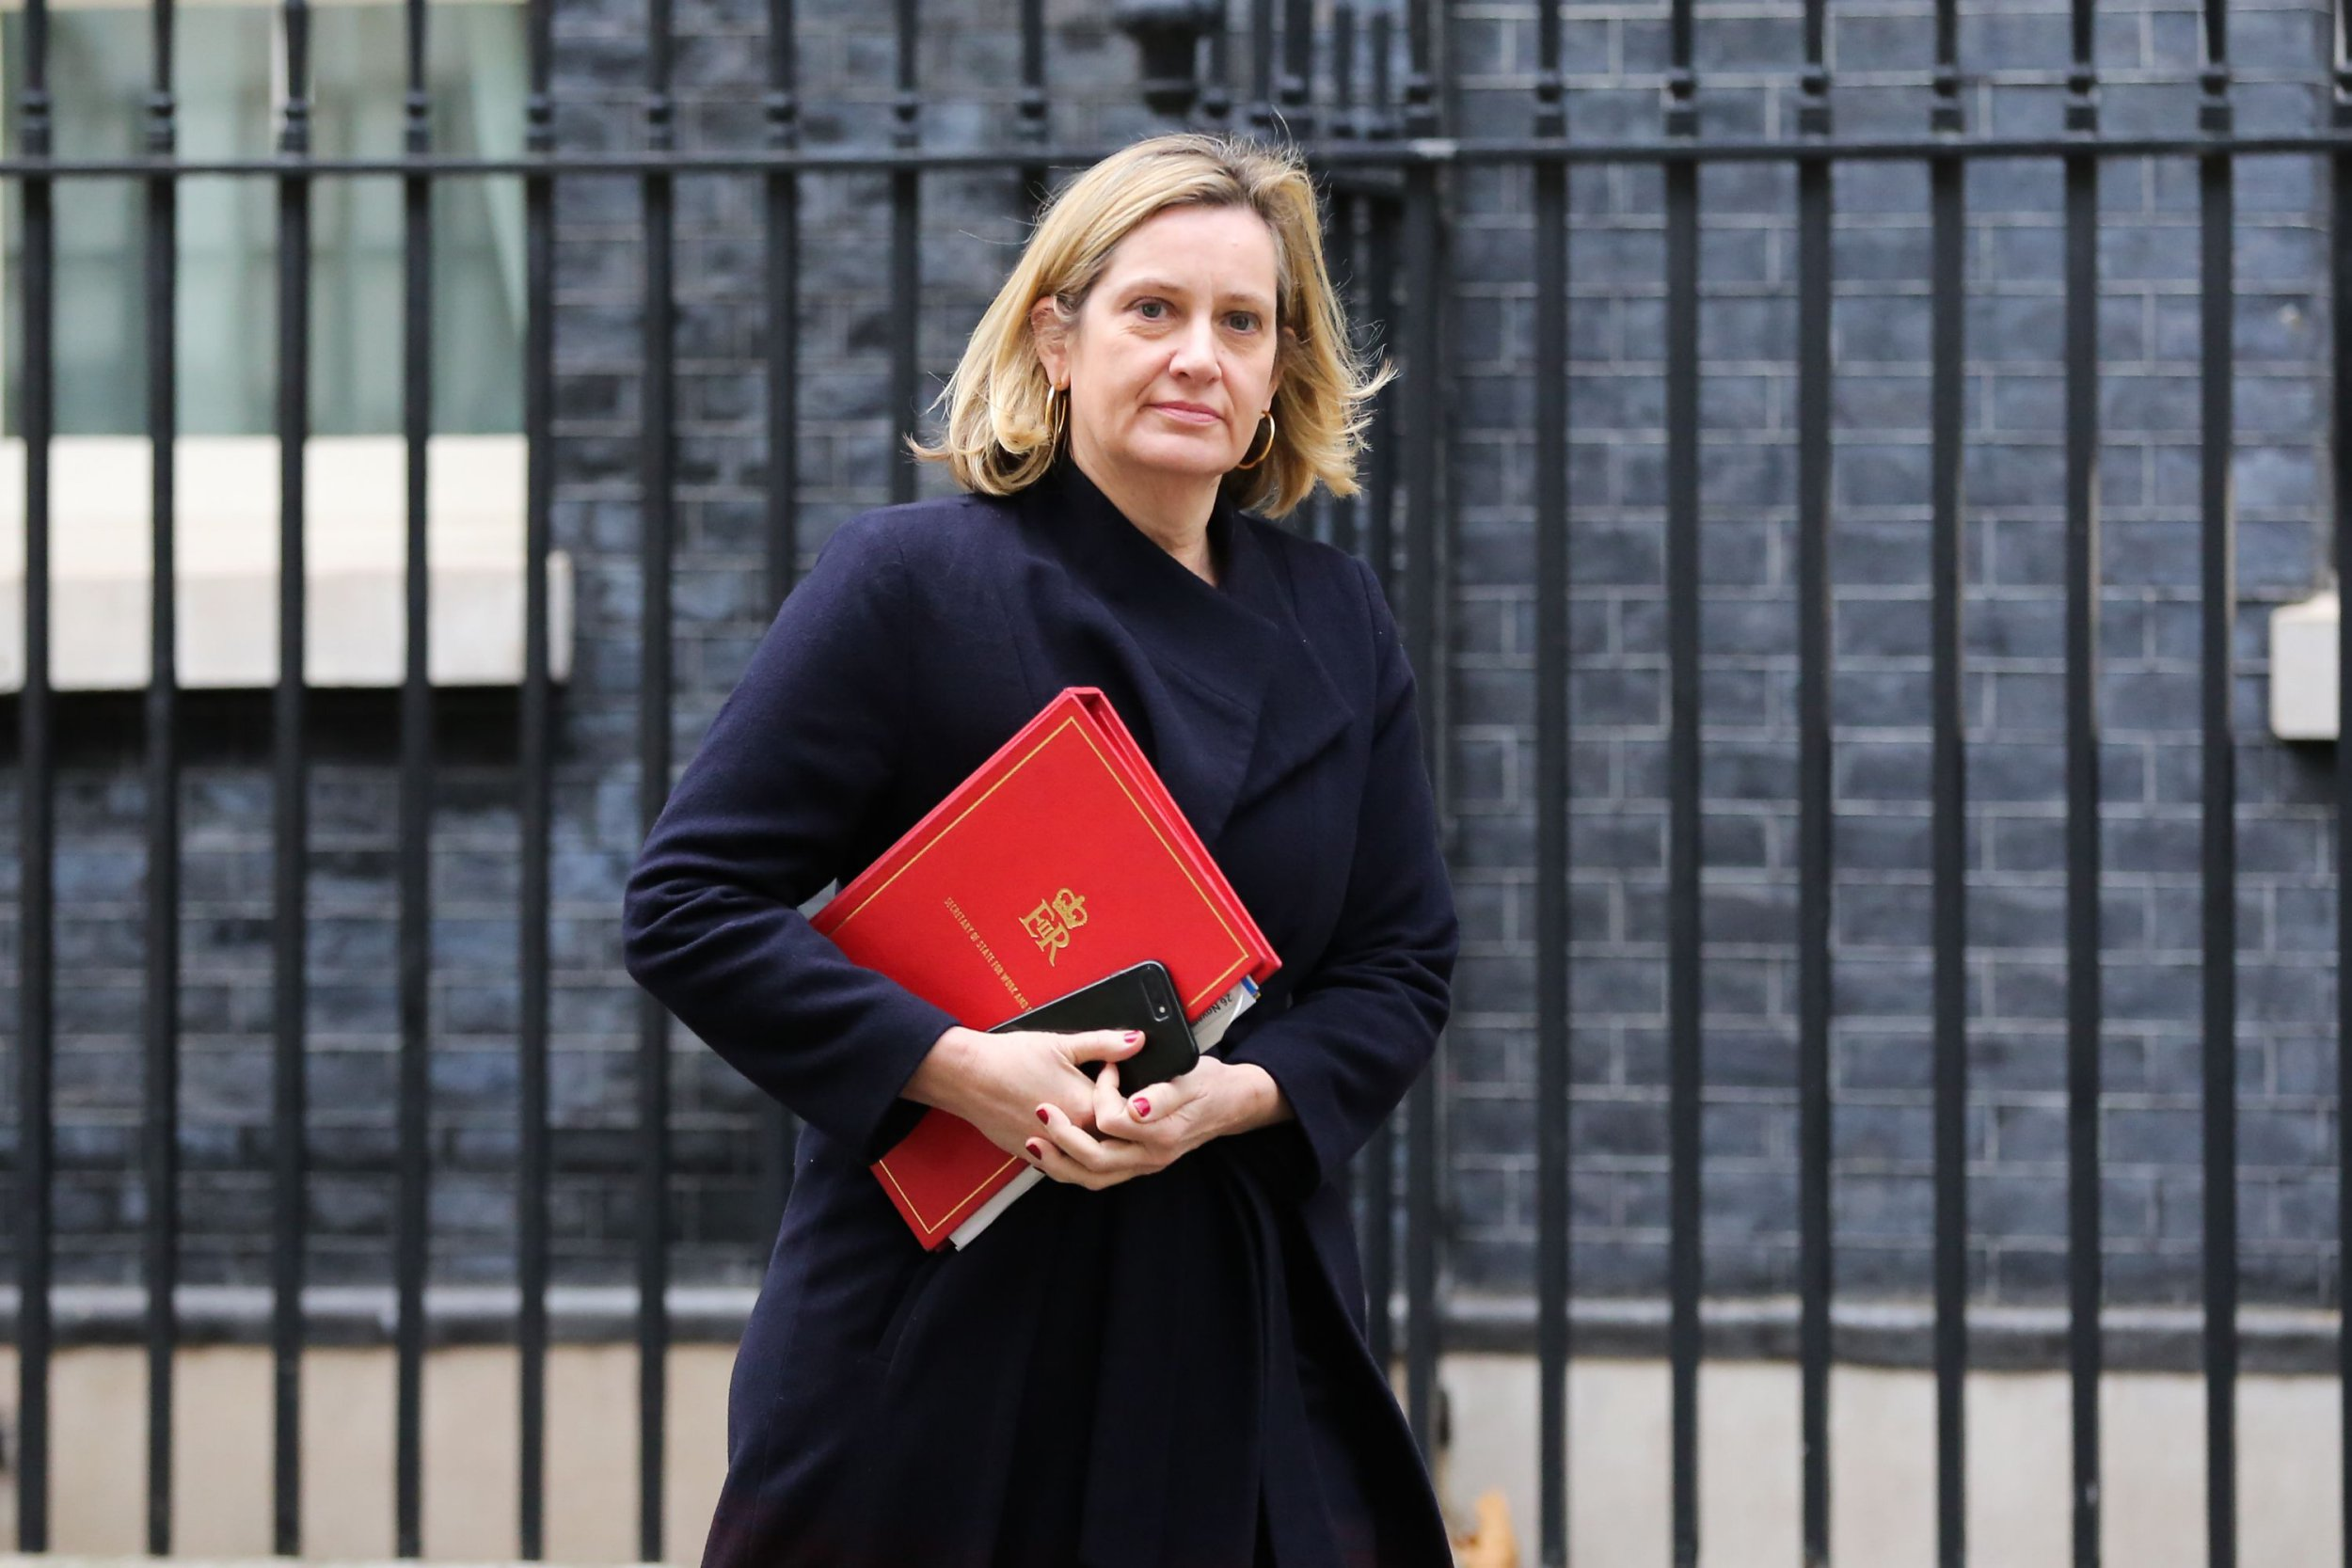 Mandatory Credit: Photo by Dinendra Haria/REX/Shutterstock (9993062c) Amber Rudd - Secretary of State for Work and Pensions Cabinet Meeting, London, UK - 26 Nov 2018